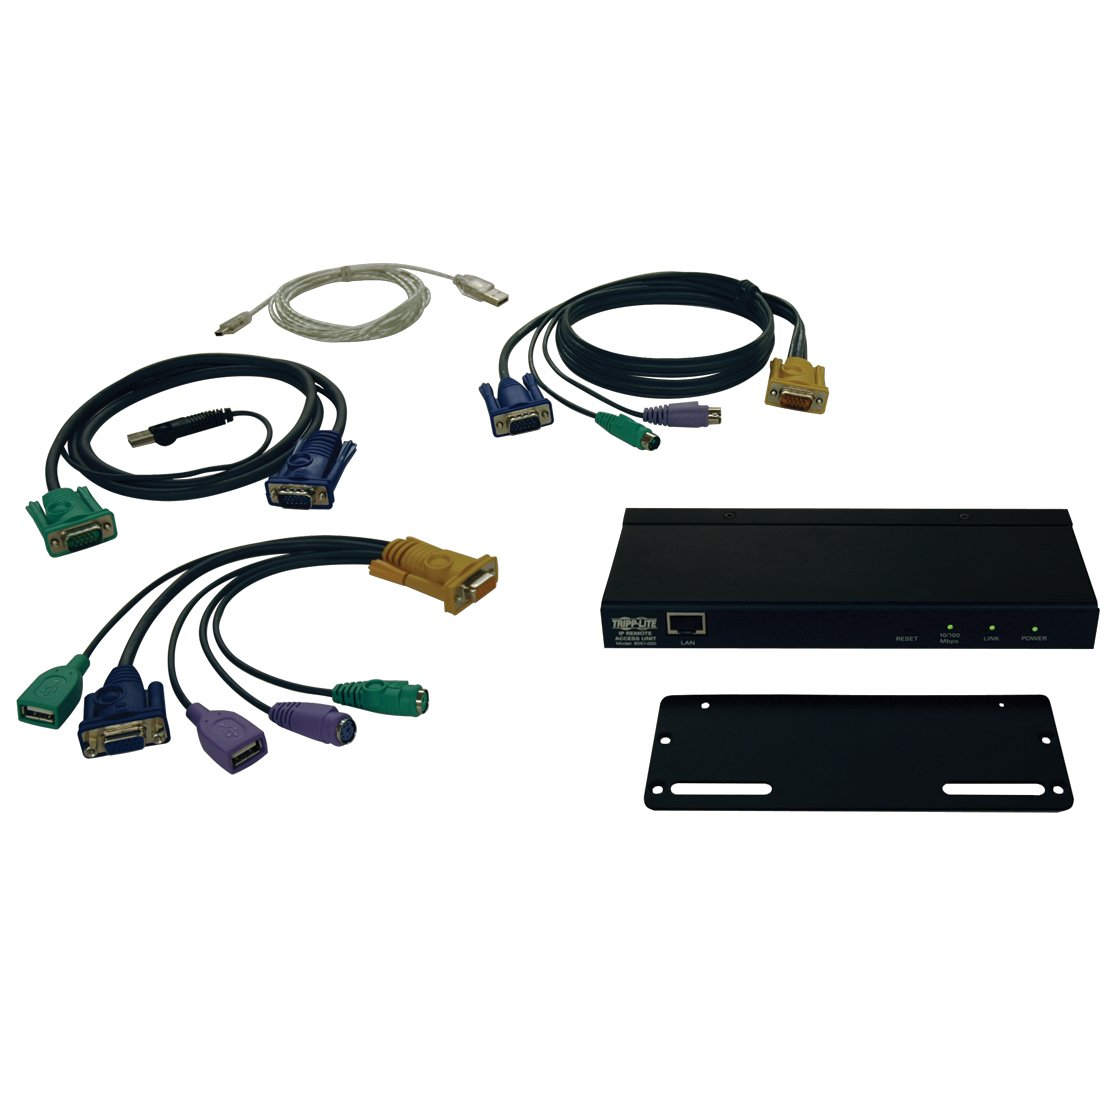 Tripp Lite Server Remote Control, External KVM over IP (B051-000) by Tripp Lite (Image #1)